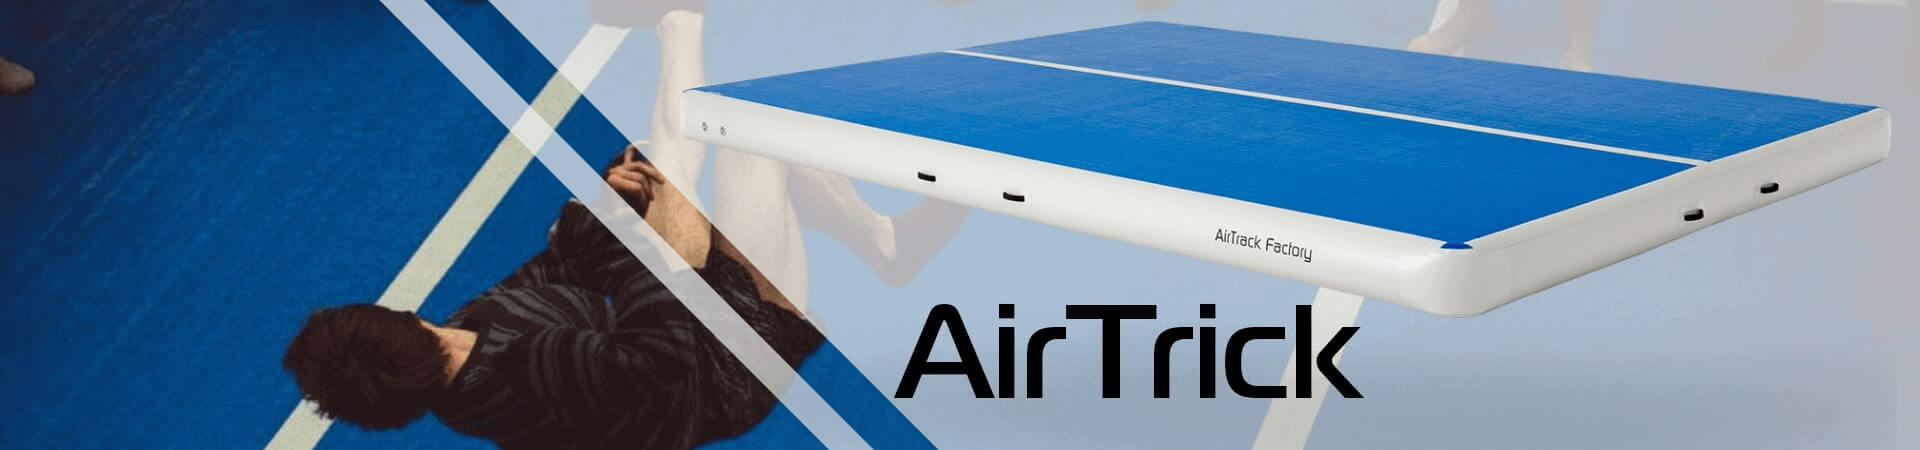 Airtrack Mat For Sale Harbor Freight